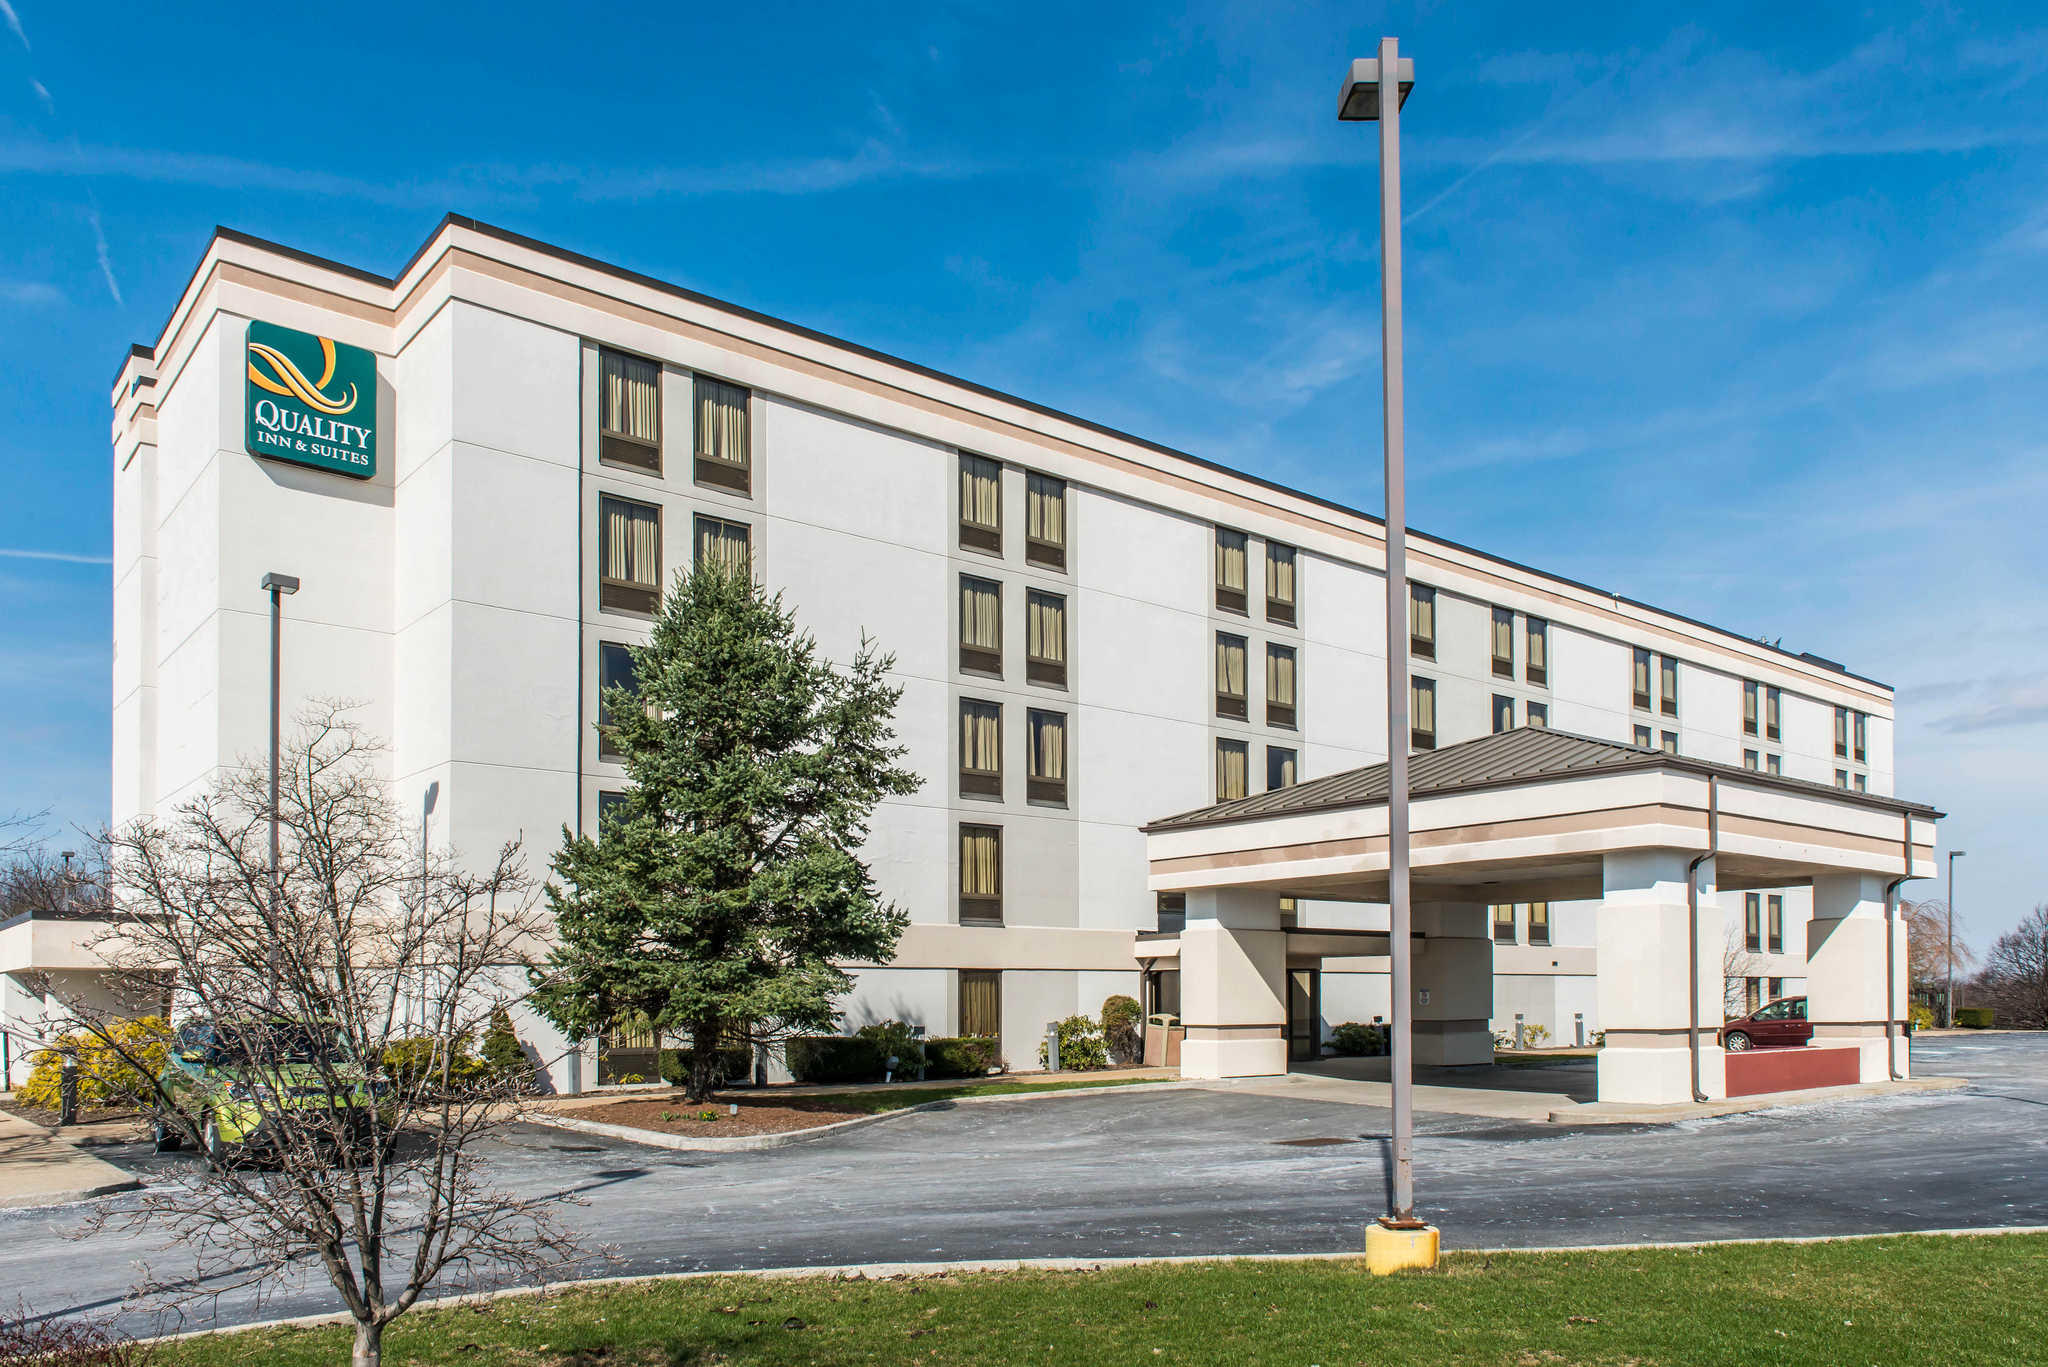 Quality Inn & Suites in Johnstown, PA - (814) 266-3...